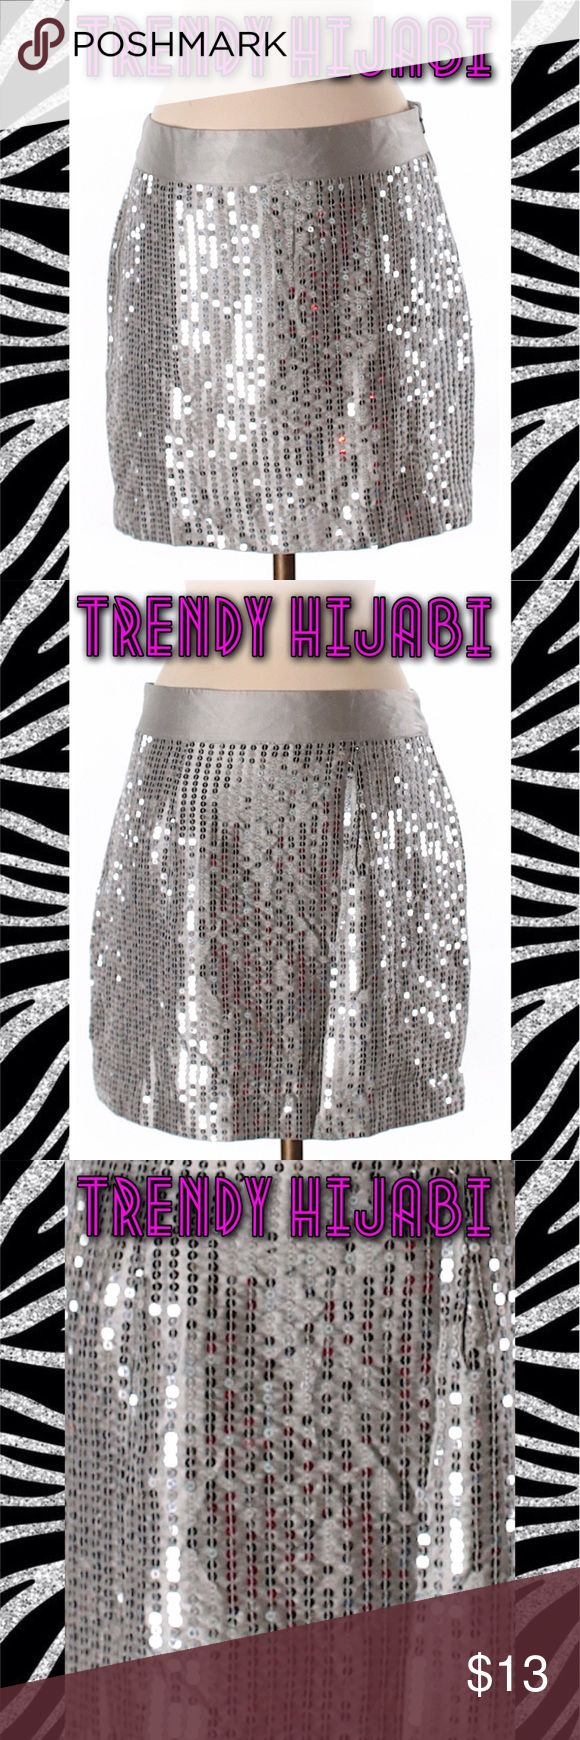 "🔜 LC 🔜 Gap Outlet Sequined Formal Skirt Size 2 Pencil silhouette Gray Solid Embellished details Measurements 15"" Length Materials 100% Polyester GAP Skirts Pencil"